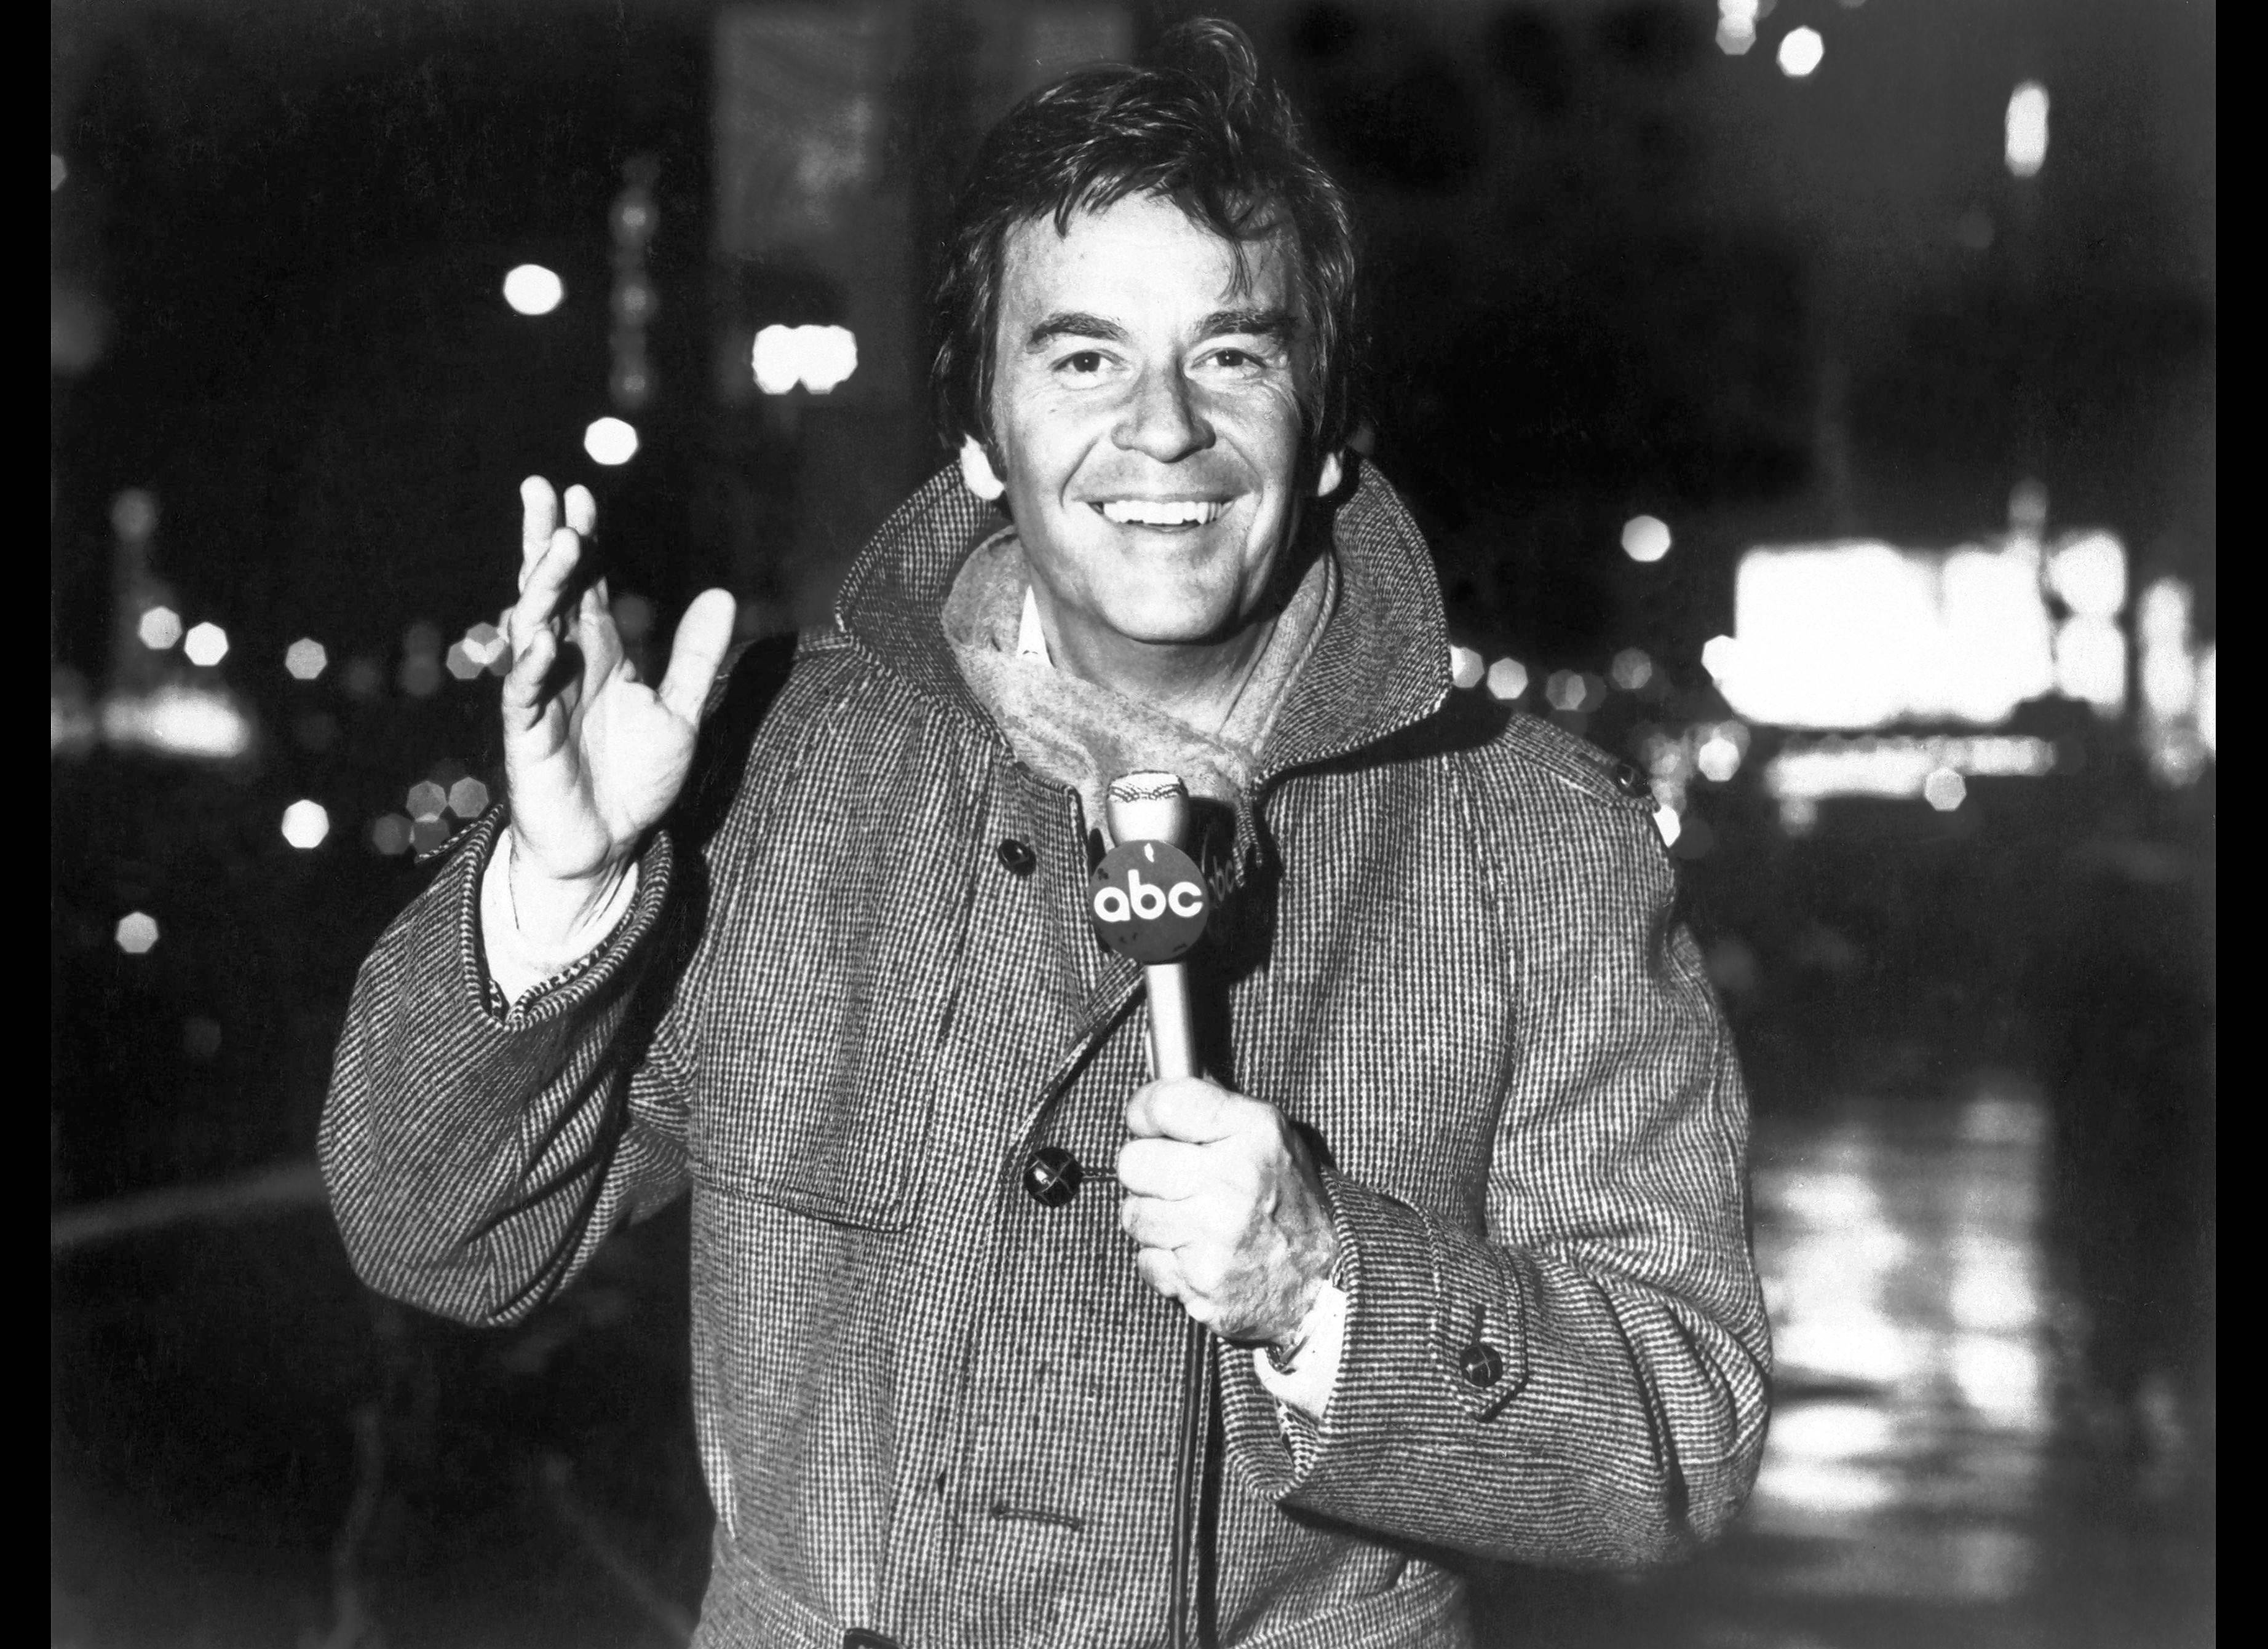 The late Dick Clark, producer and television host, owned a company that put on more than 7,500 TV and live shows.